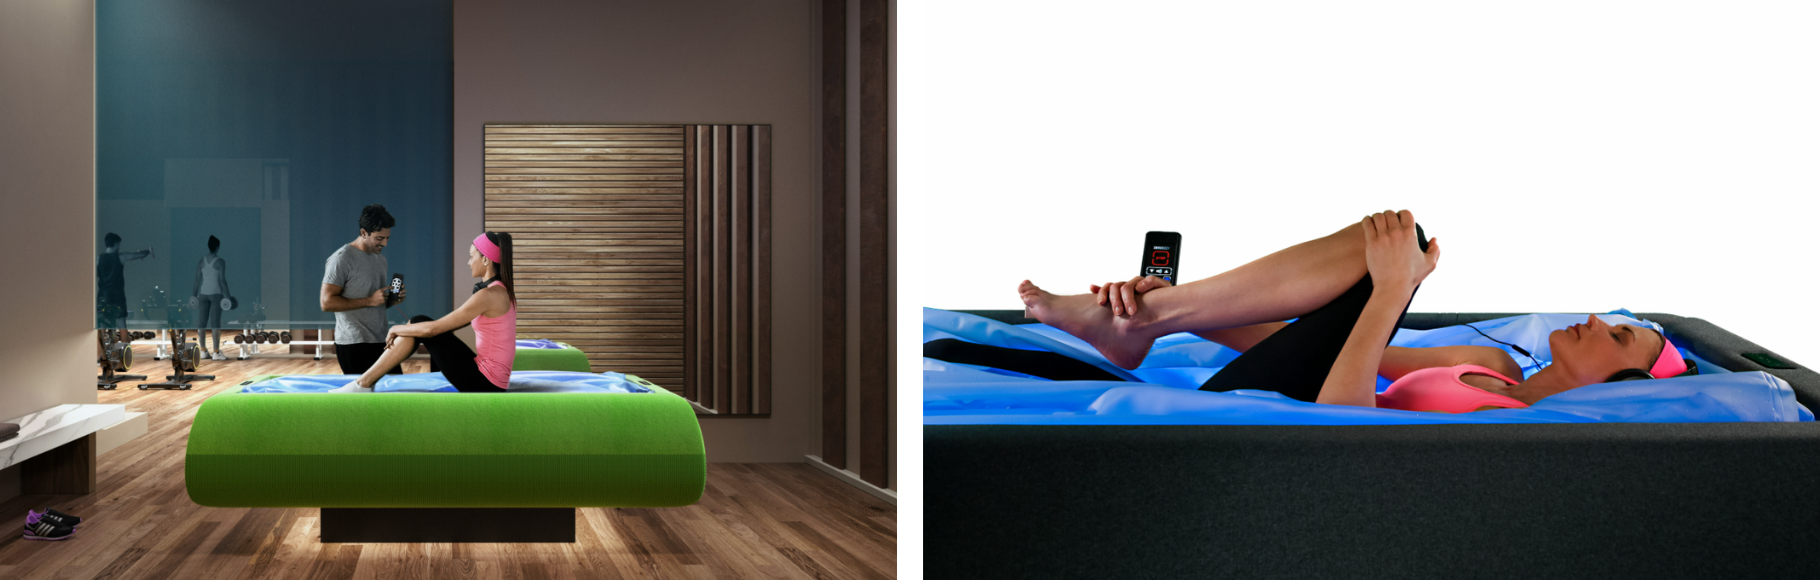 Zerobody flotation bed in use with athlete relaxing